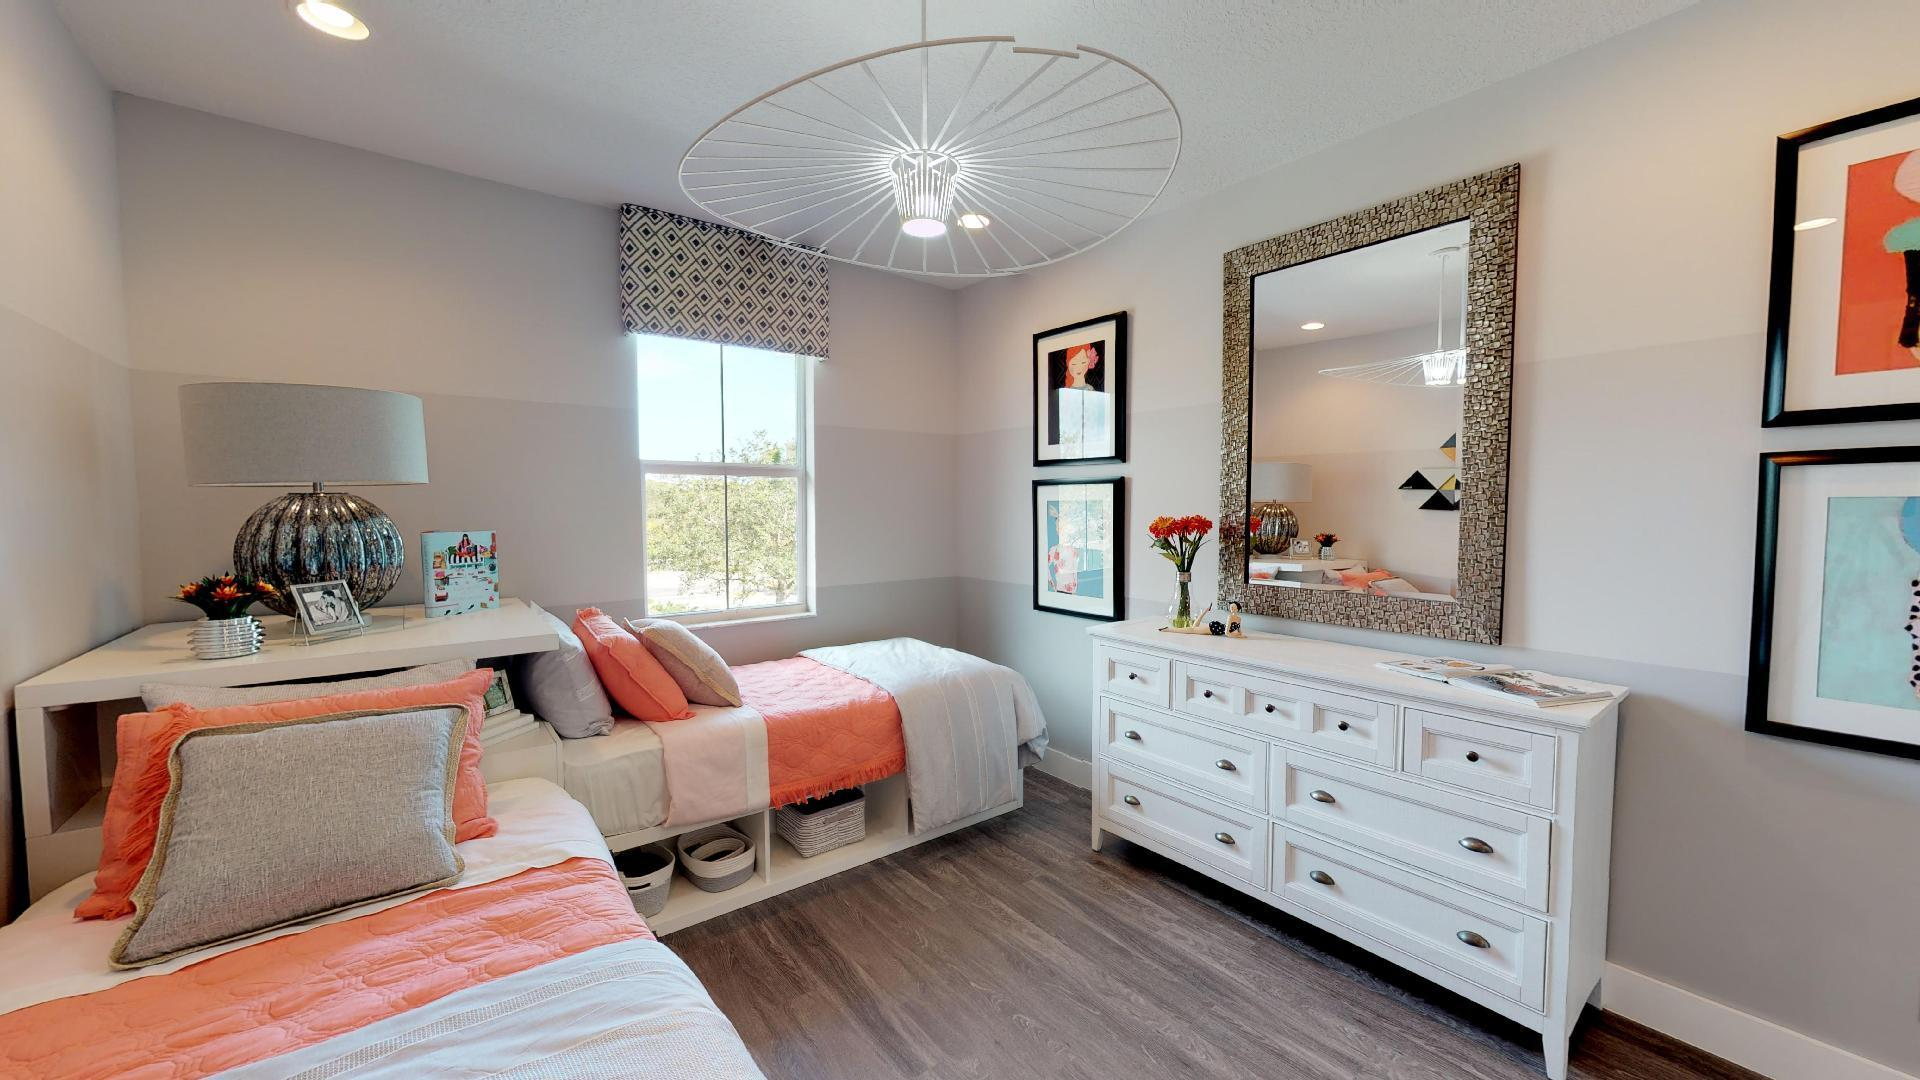 Bedroom featured in the ECHO By Ascend Properties  in Palm Beach County, FL